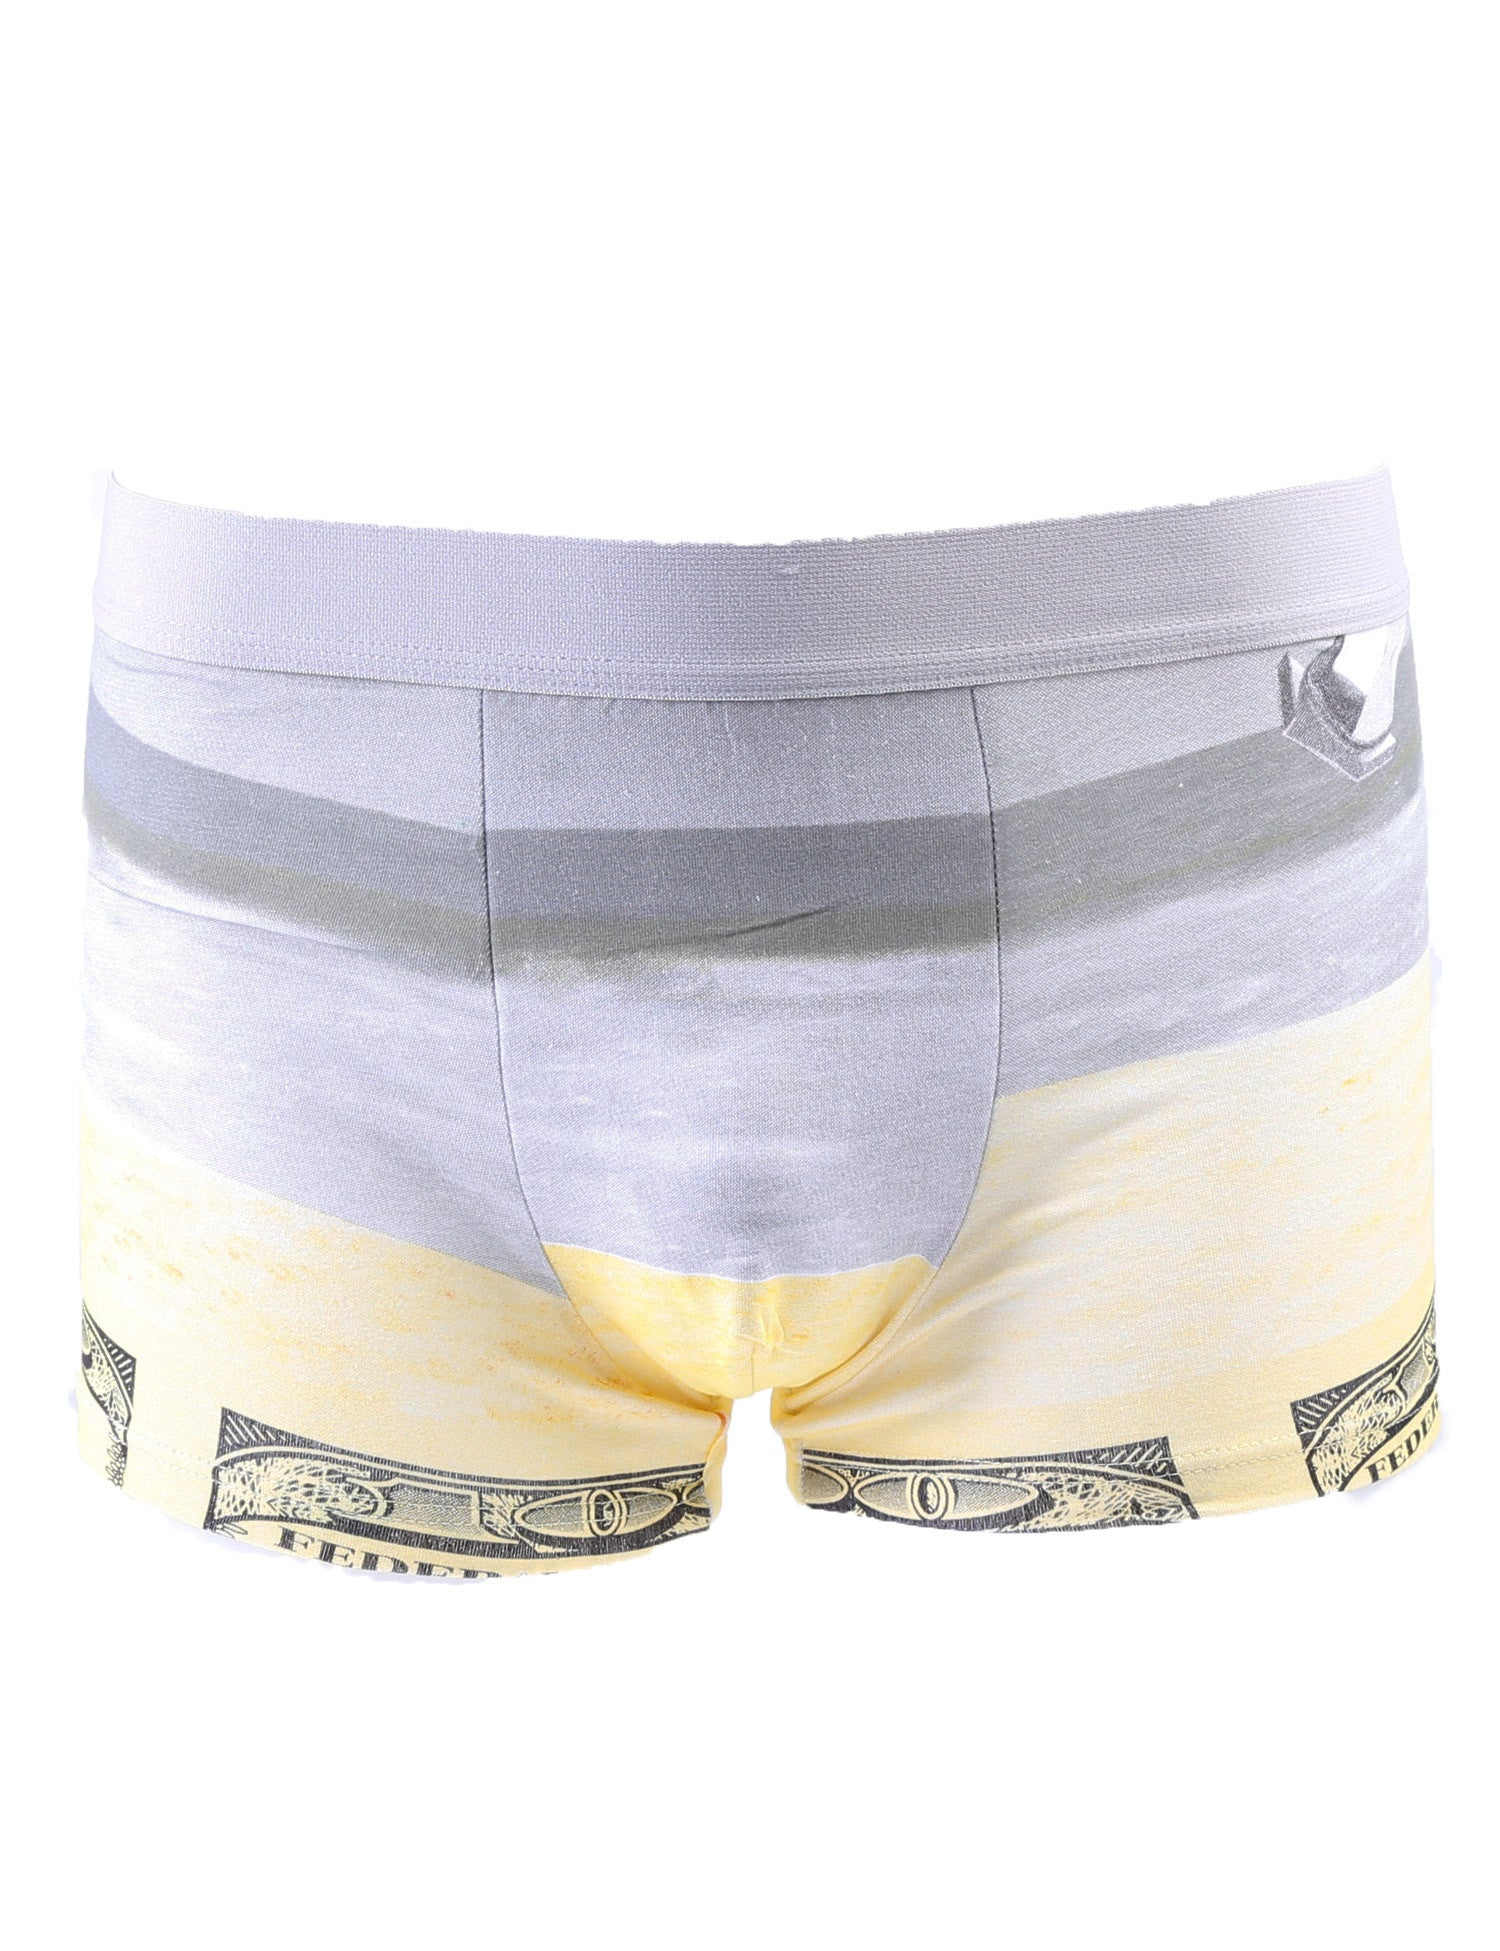 Crazyman Boxers 2419 Grey